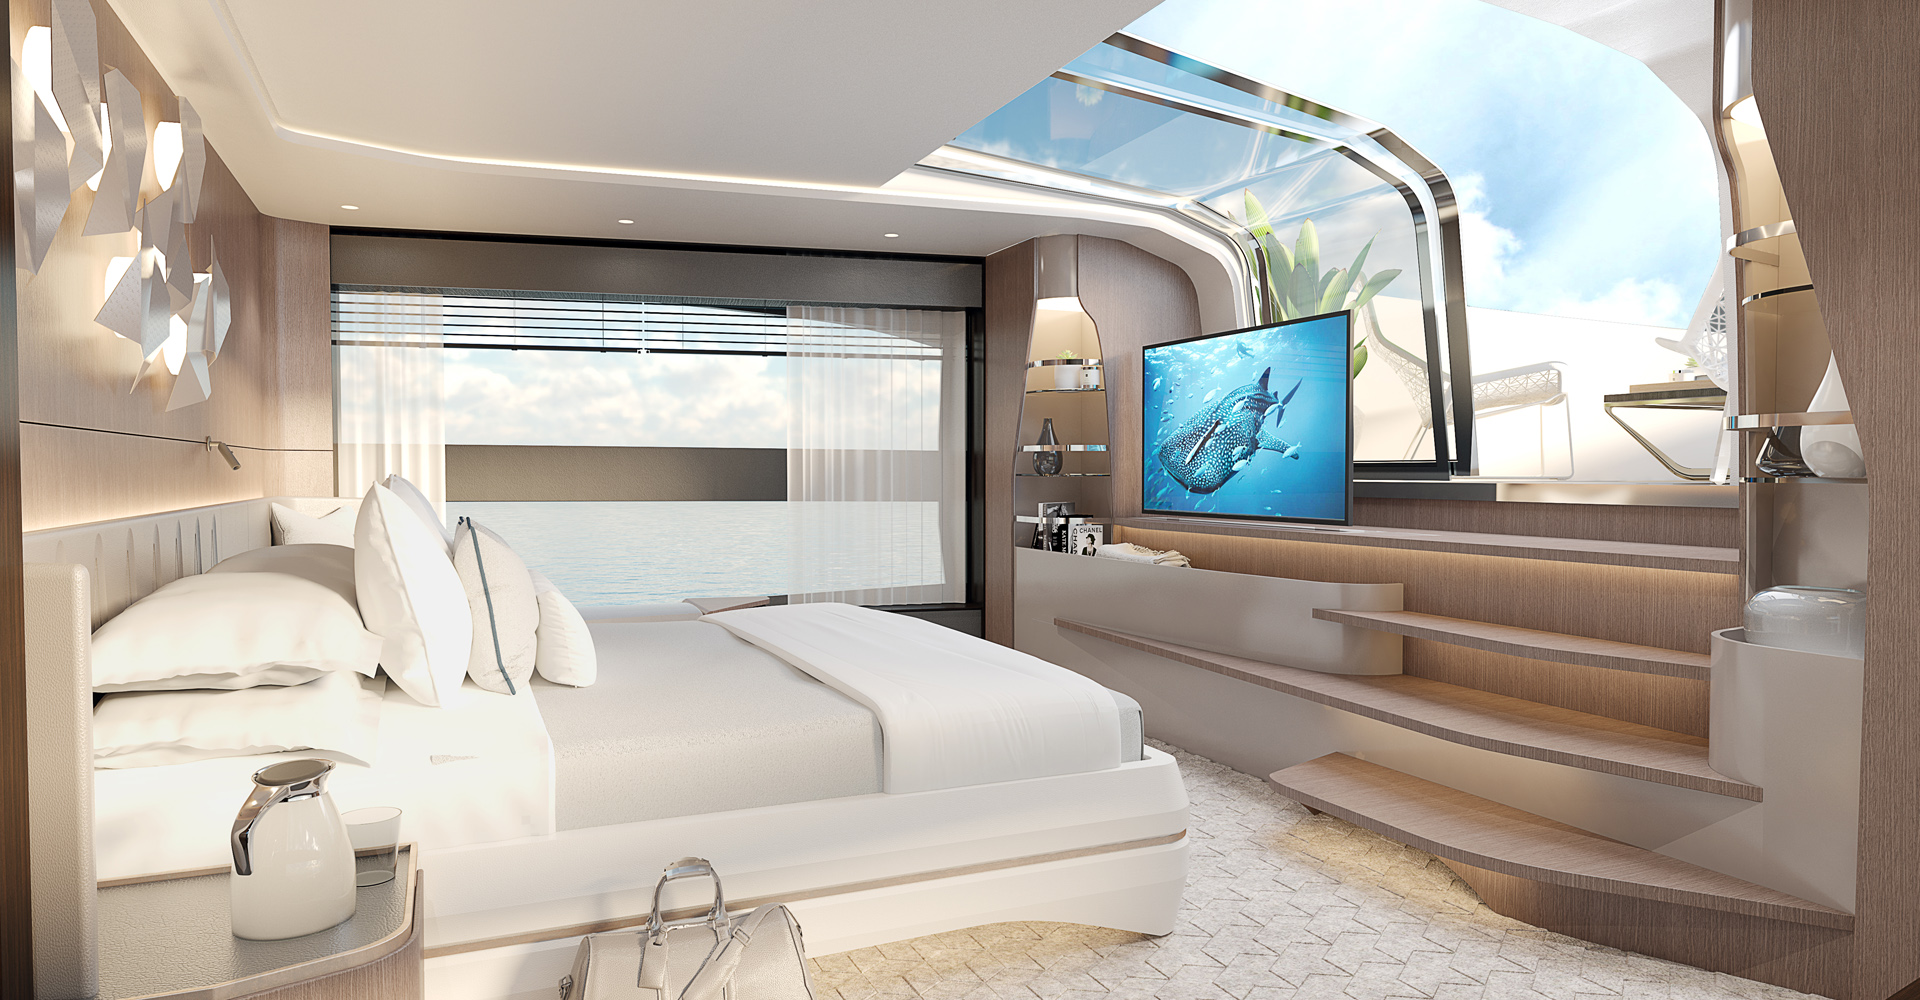 The master suite aboard the Sunseeker 100 Yacht